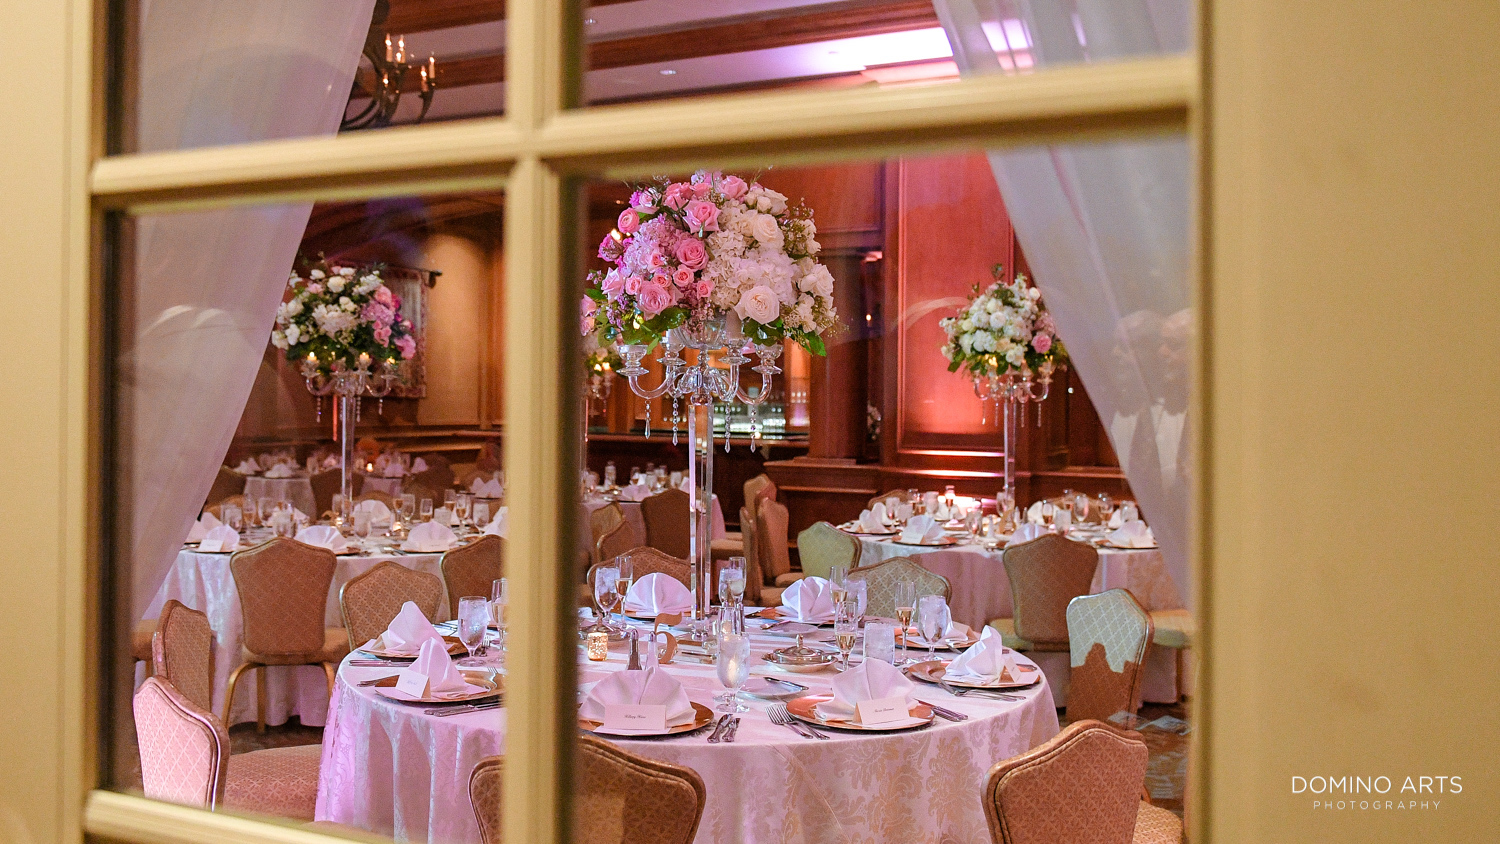 Room picture of wedding décor at The Ritz Carlton Sarasota